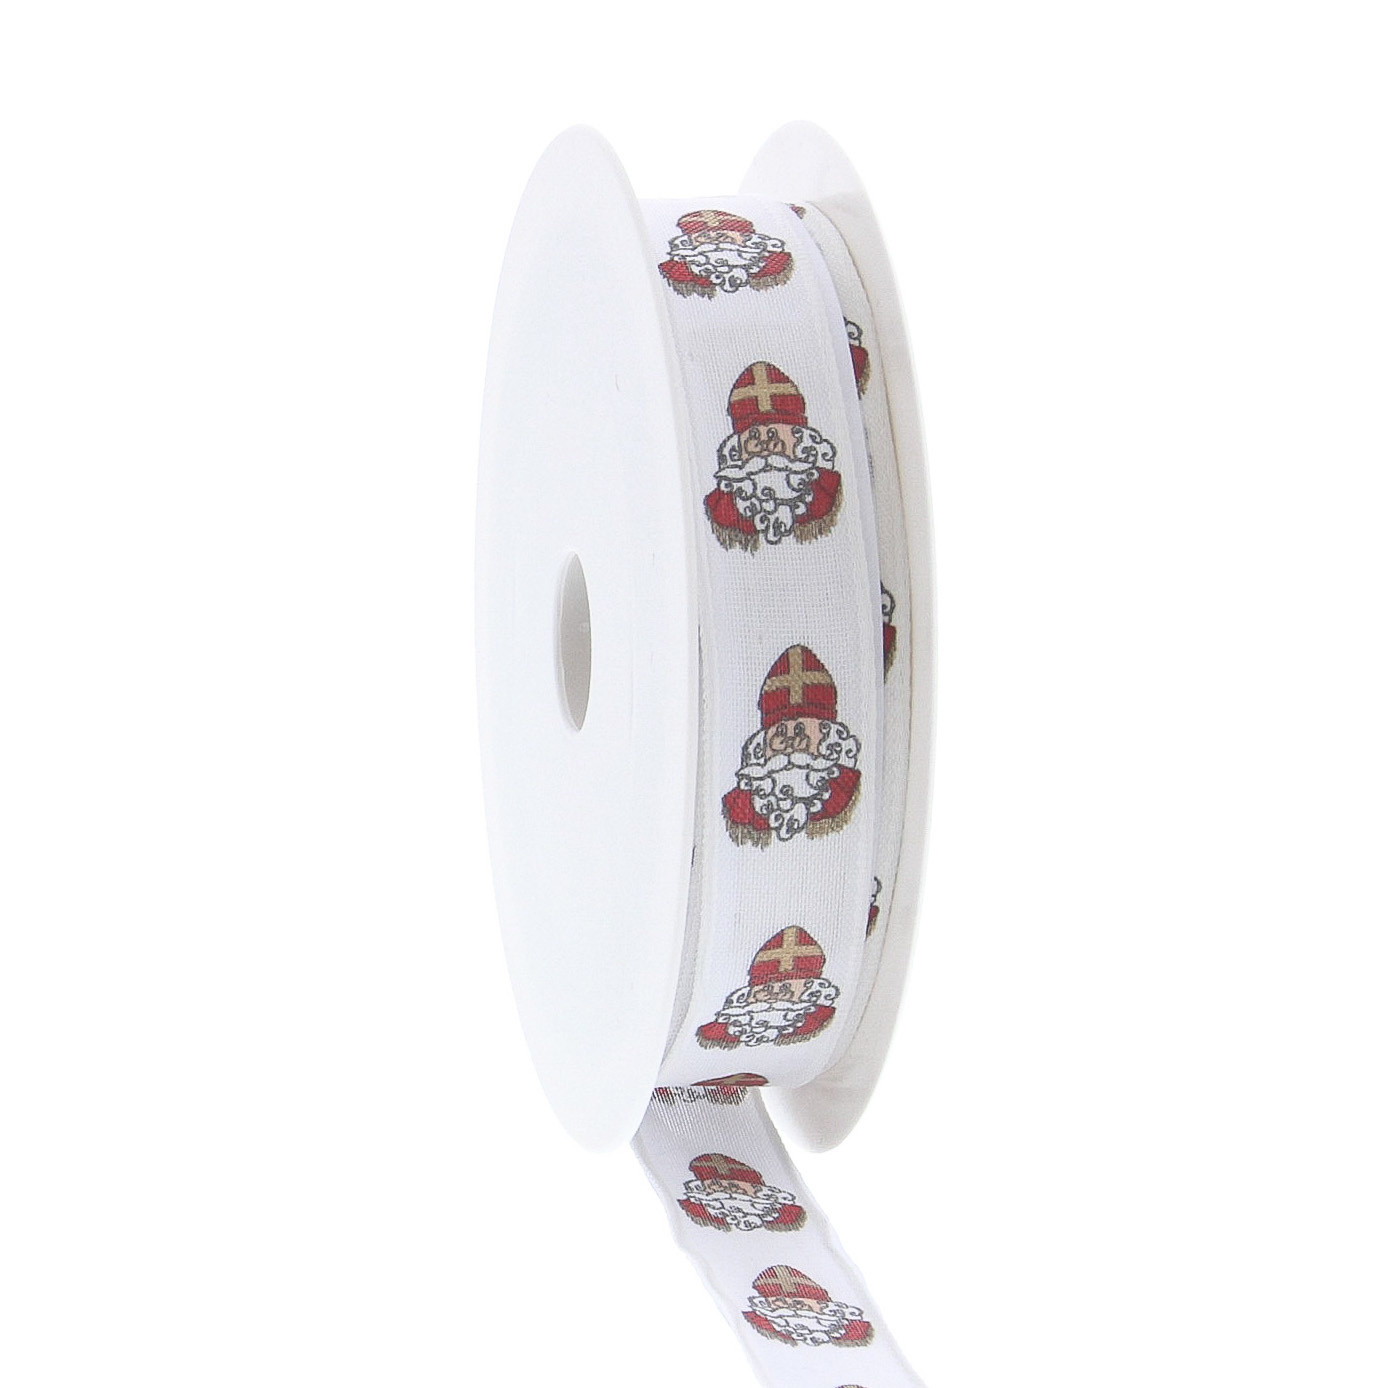 """Wired ribbon Saint Nicholas """"Vintage"""" figure - White - Available in widths of 15mm and 25mm - 20m per roll"""